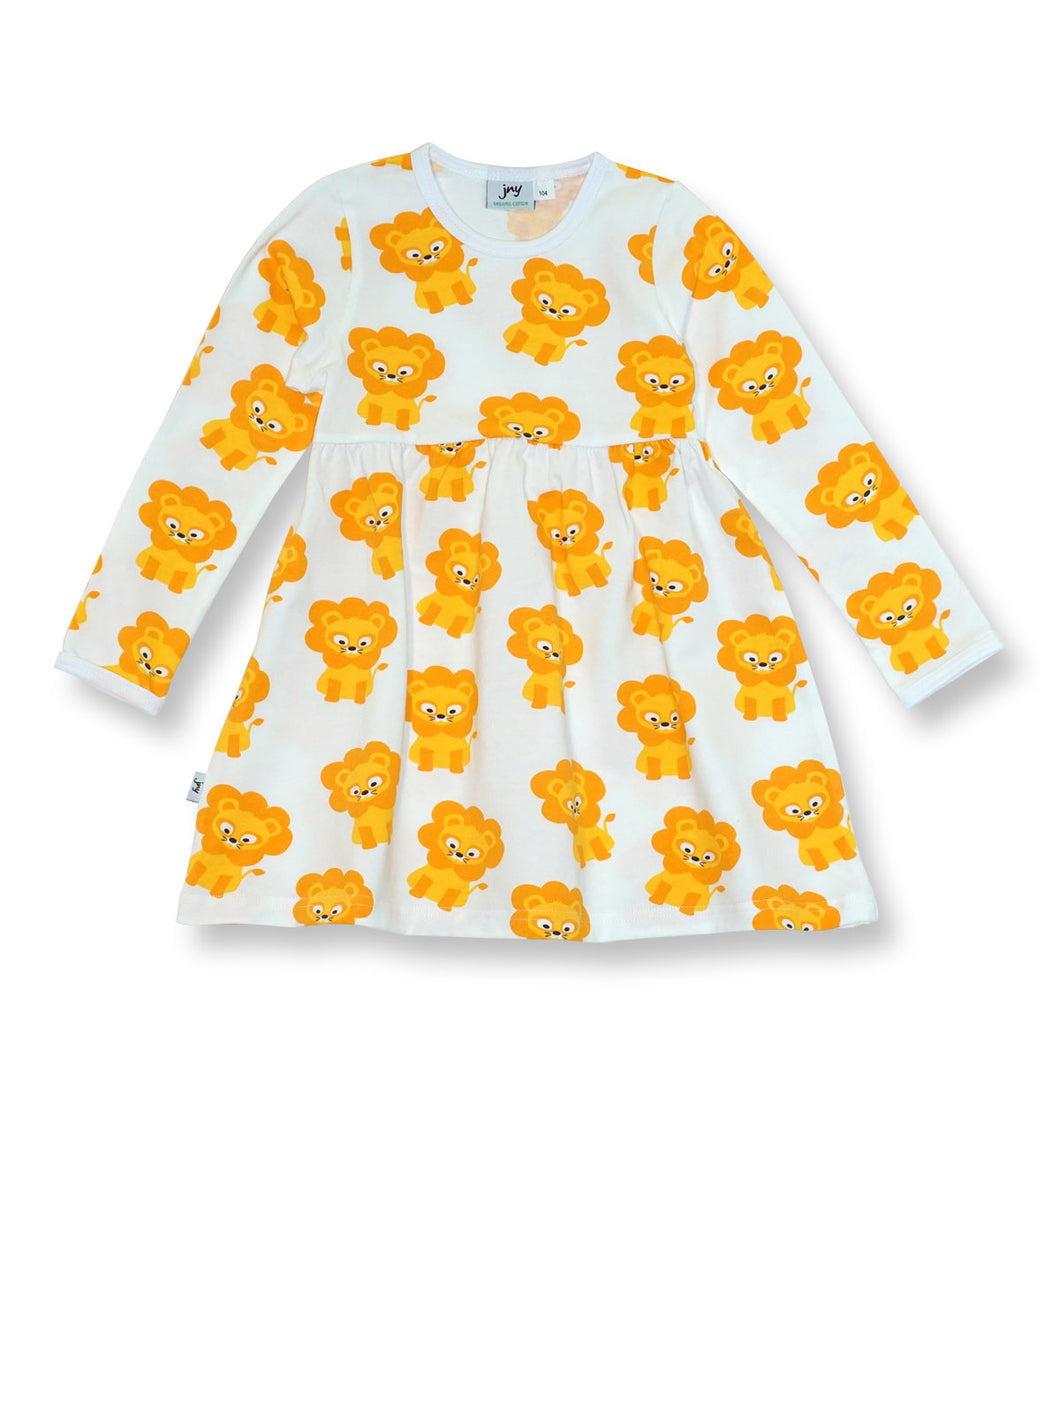 JNY Lion Sweetdress Long Sleeve